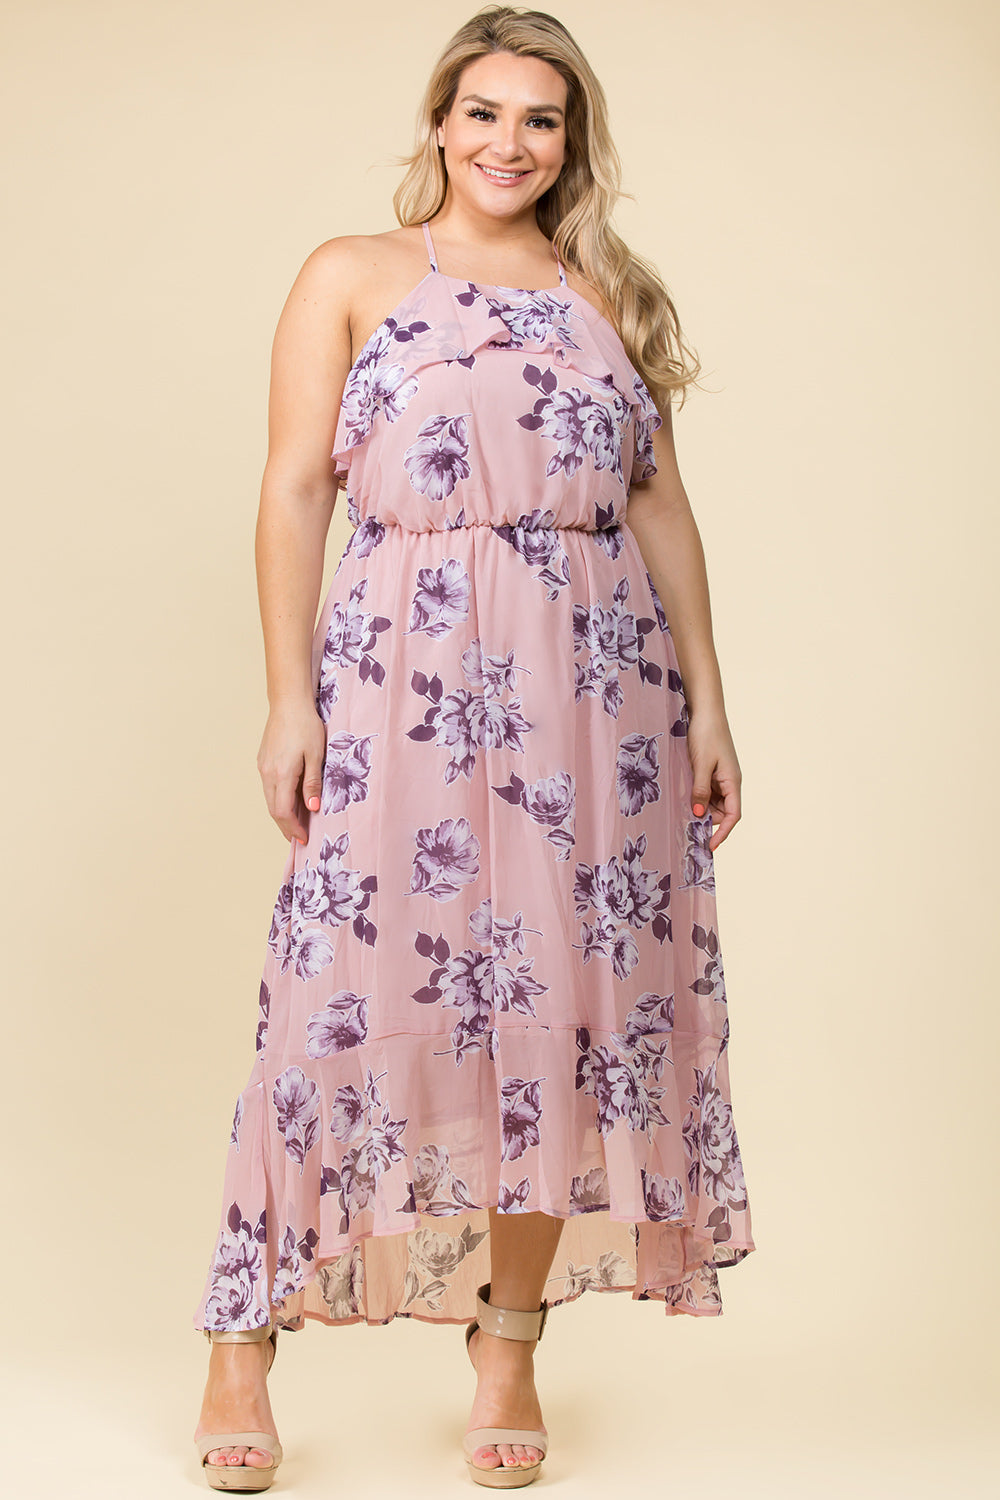 PLUS SIZE RUFFLE CRISS CROSS BACK MAXI DRESS IN BLUSH FLORAL